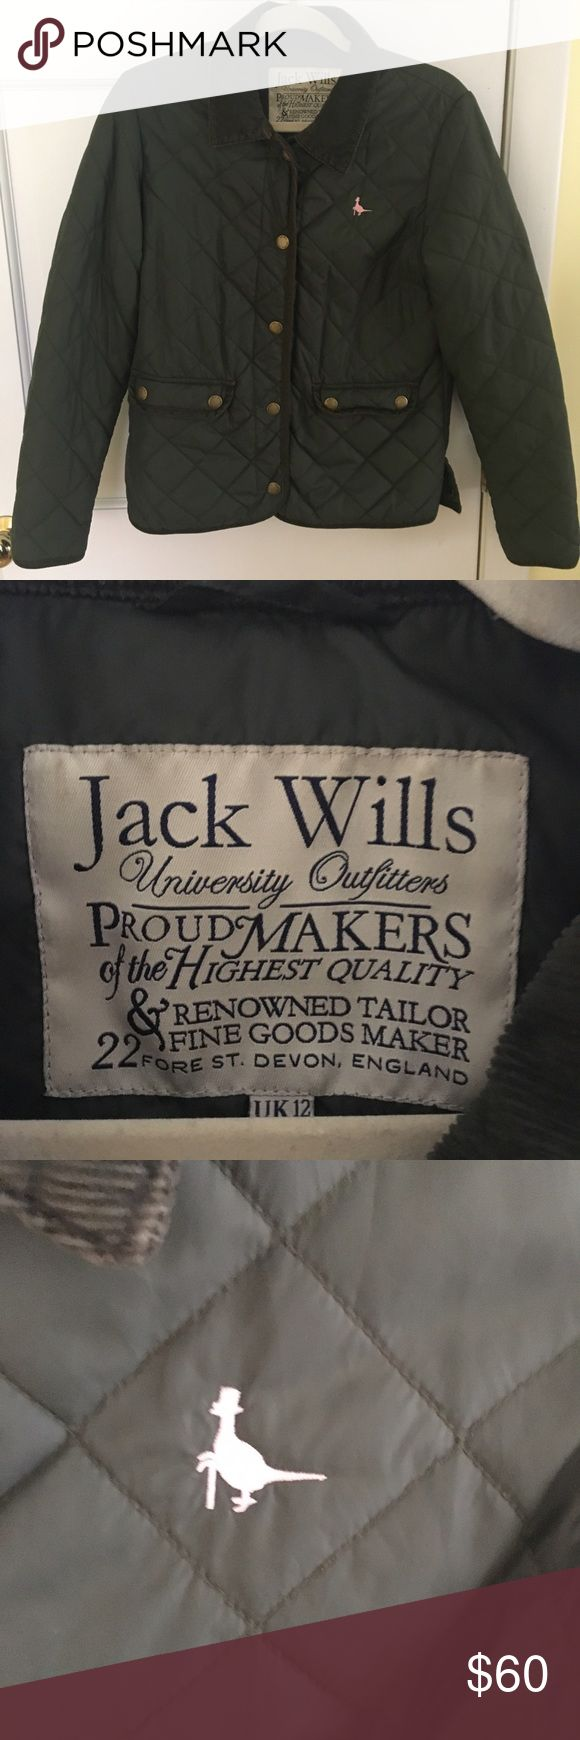 Jack Wills Quilted Jacket Original Jack Wills Quilted Jacket bought in London. Less expensive alternative to Barbour or Burberry but just as cute, trendy and comfortable. Hunter green color and floral lining is super stylish and goes with everything. Perfect condition. Don't miss out! Jack Wills Jackets & Coats